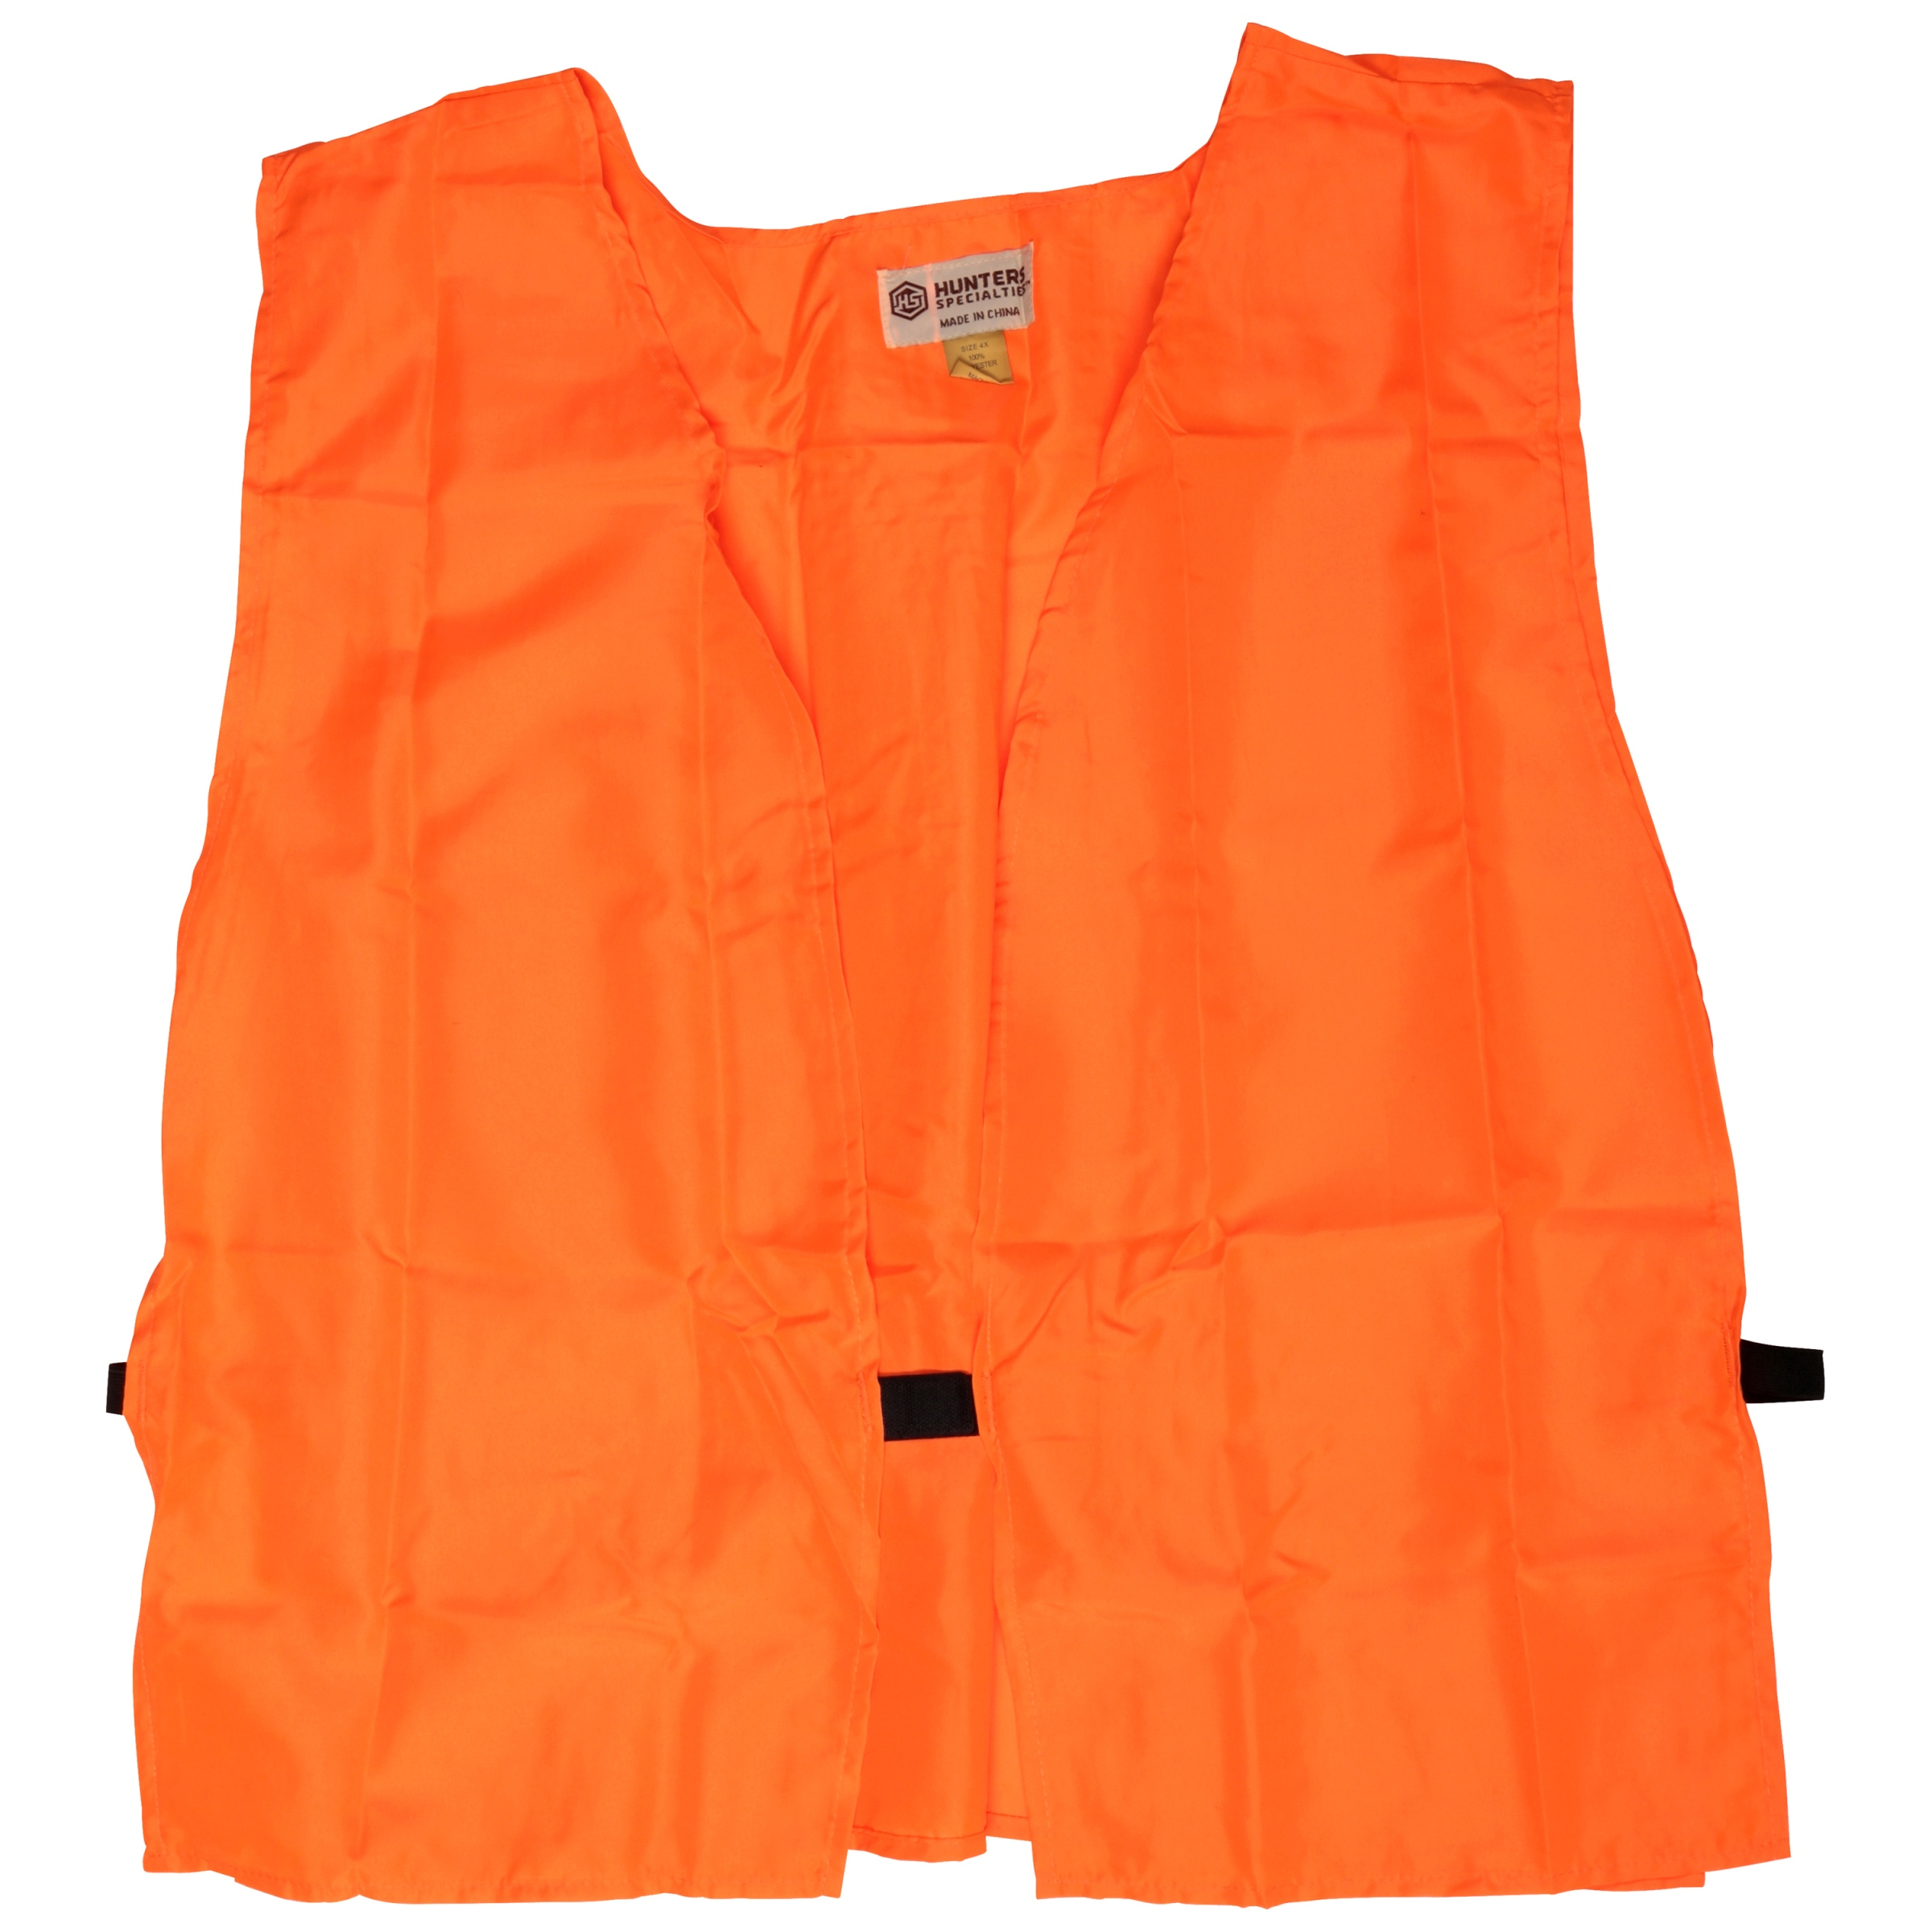 Hunters Specialties Magnum Blaze Orange Safety Vest by Hunter Specialties, Inc.